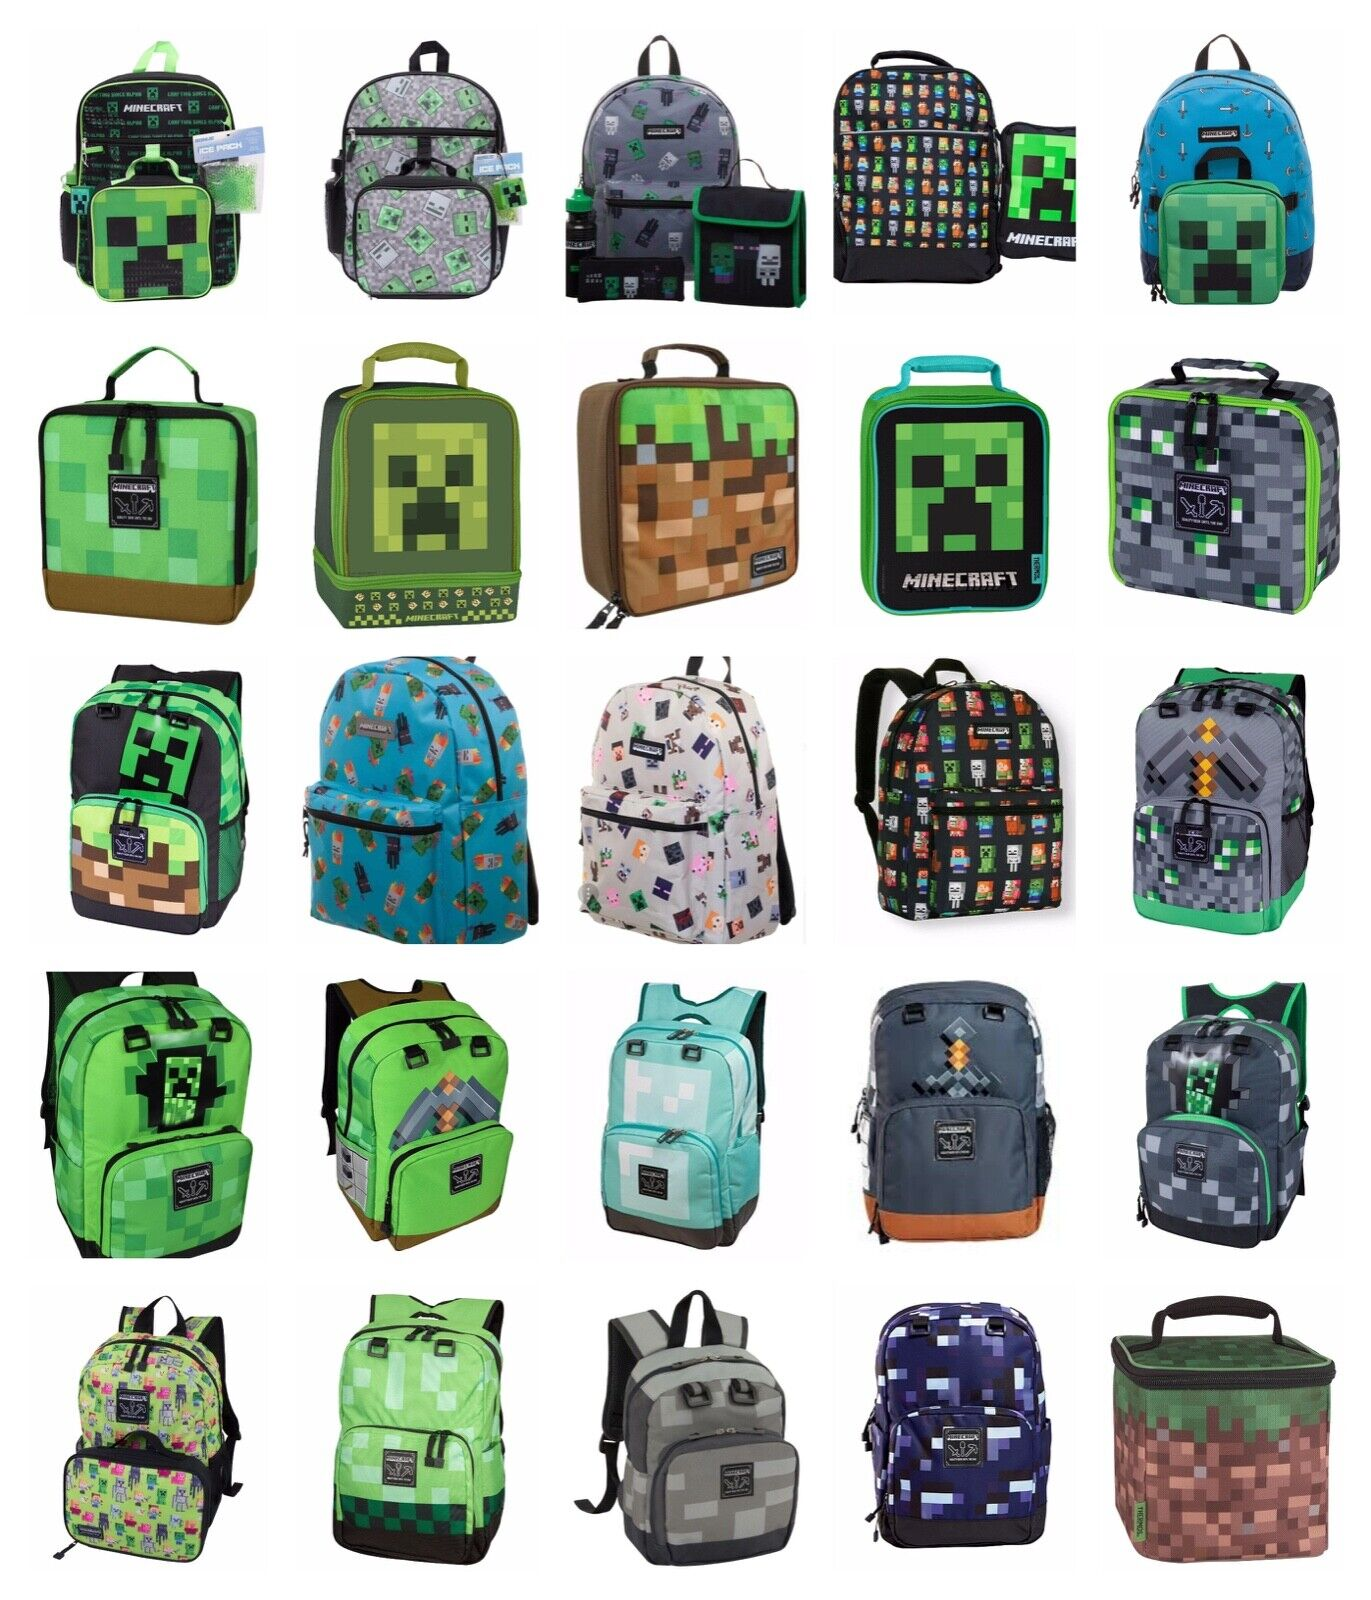 17 kids character school backpack lunch box